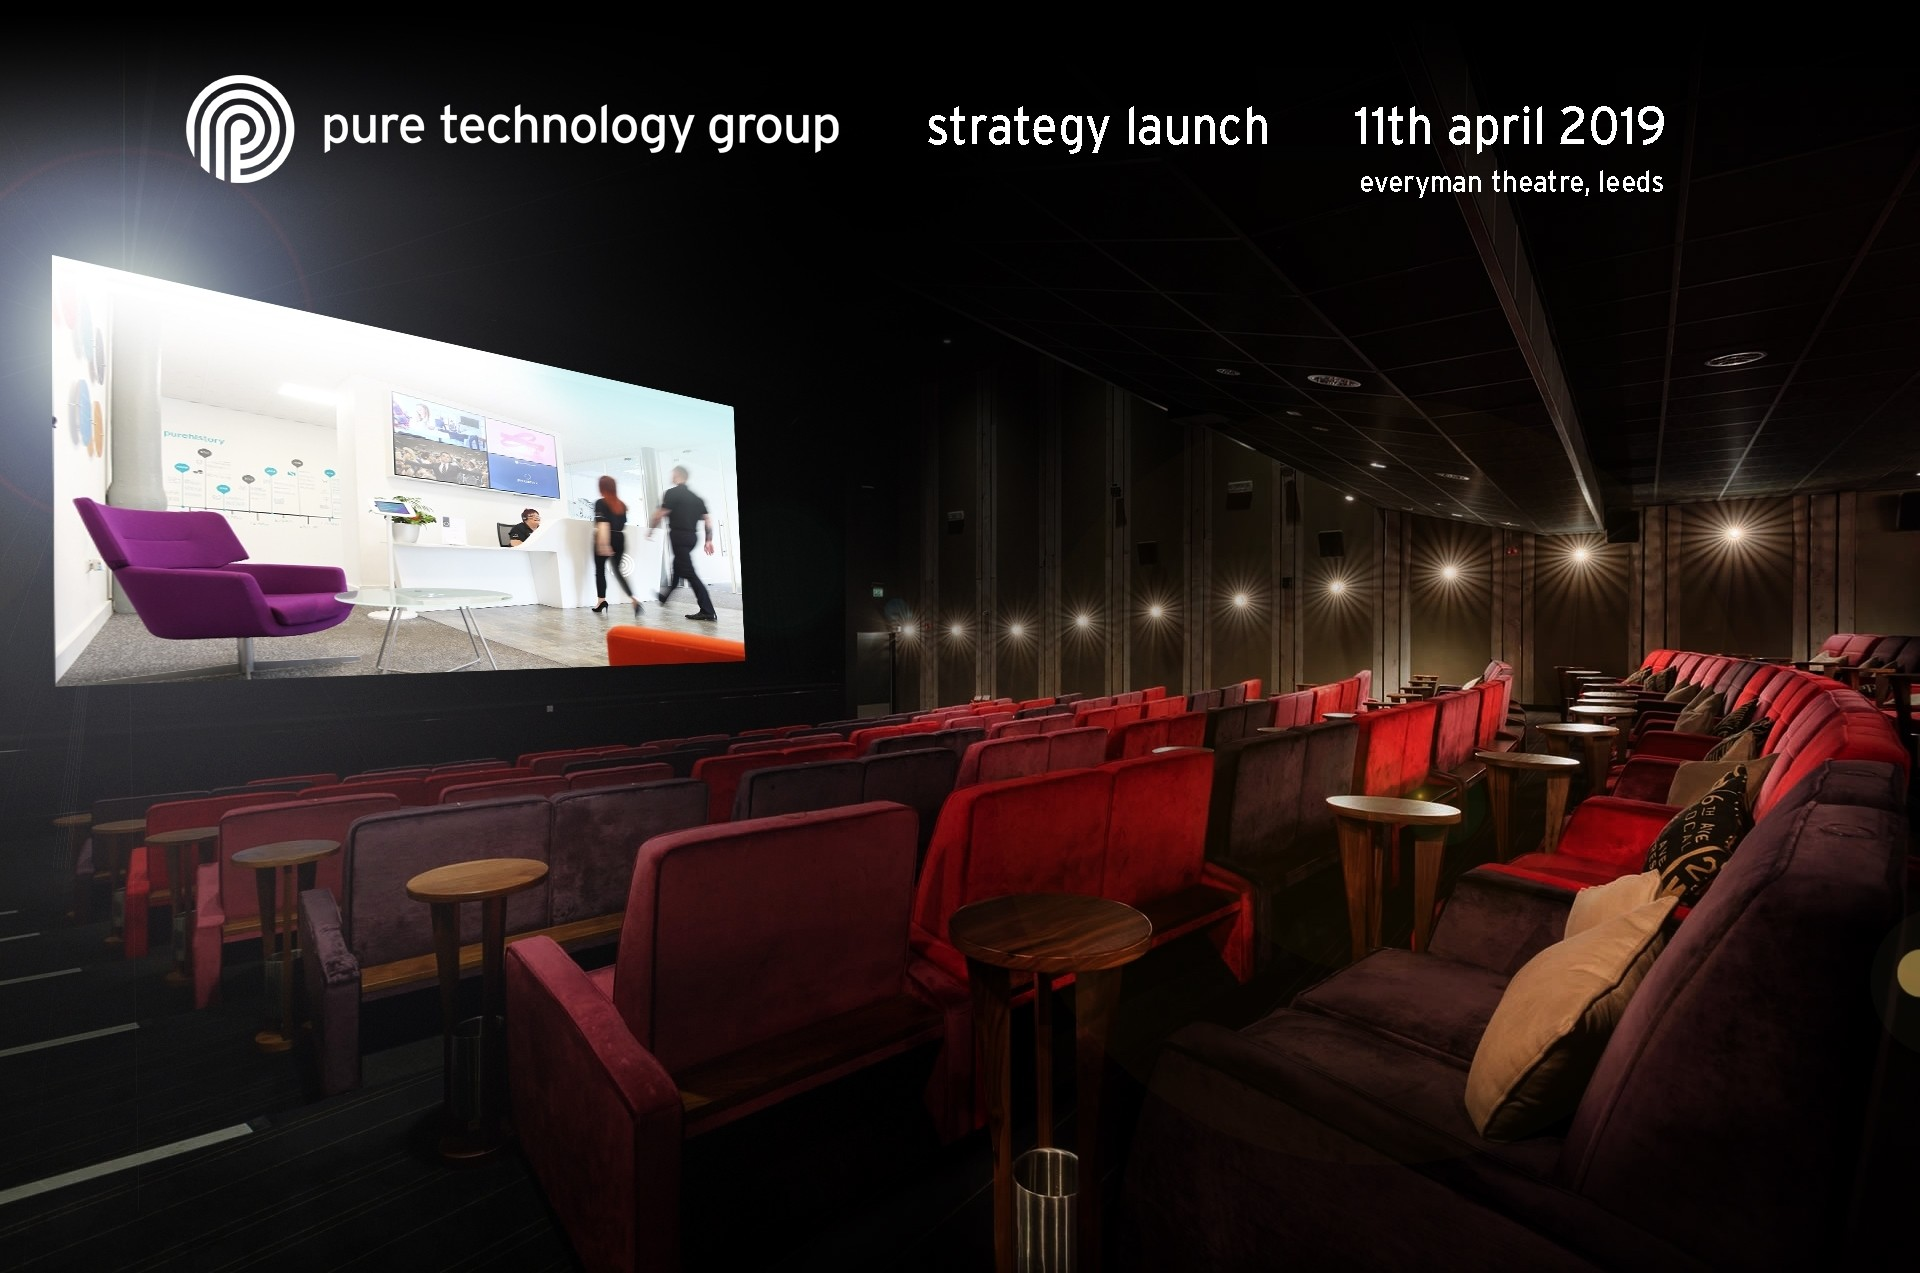 190411 - 000 strategy launch